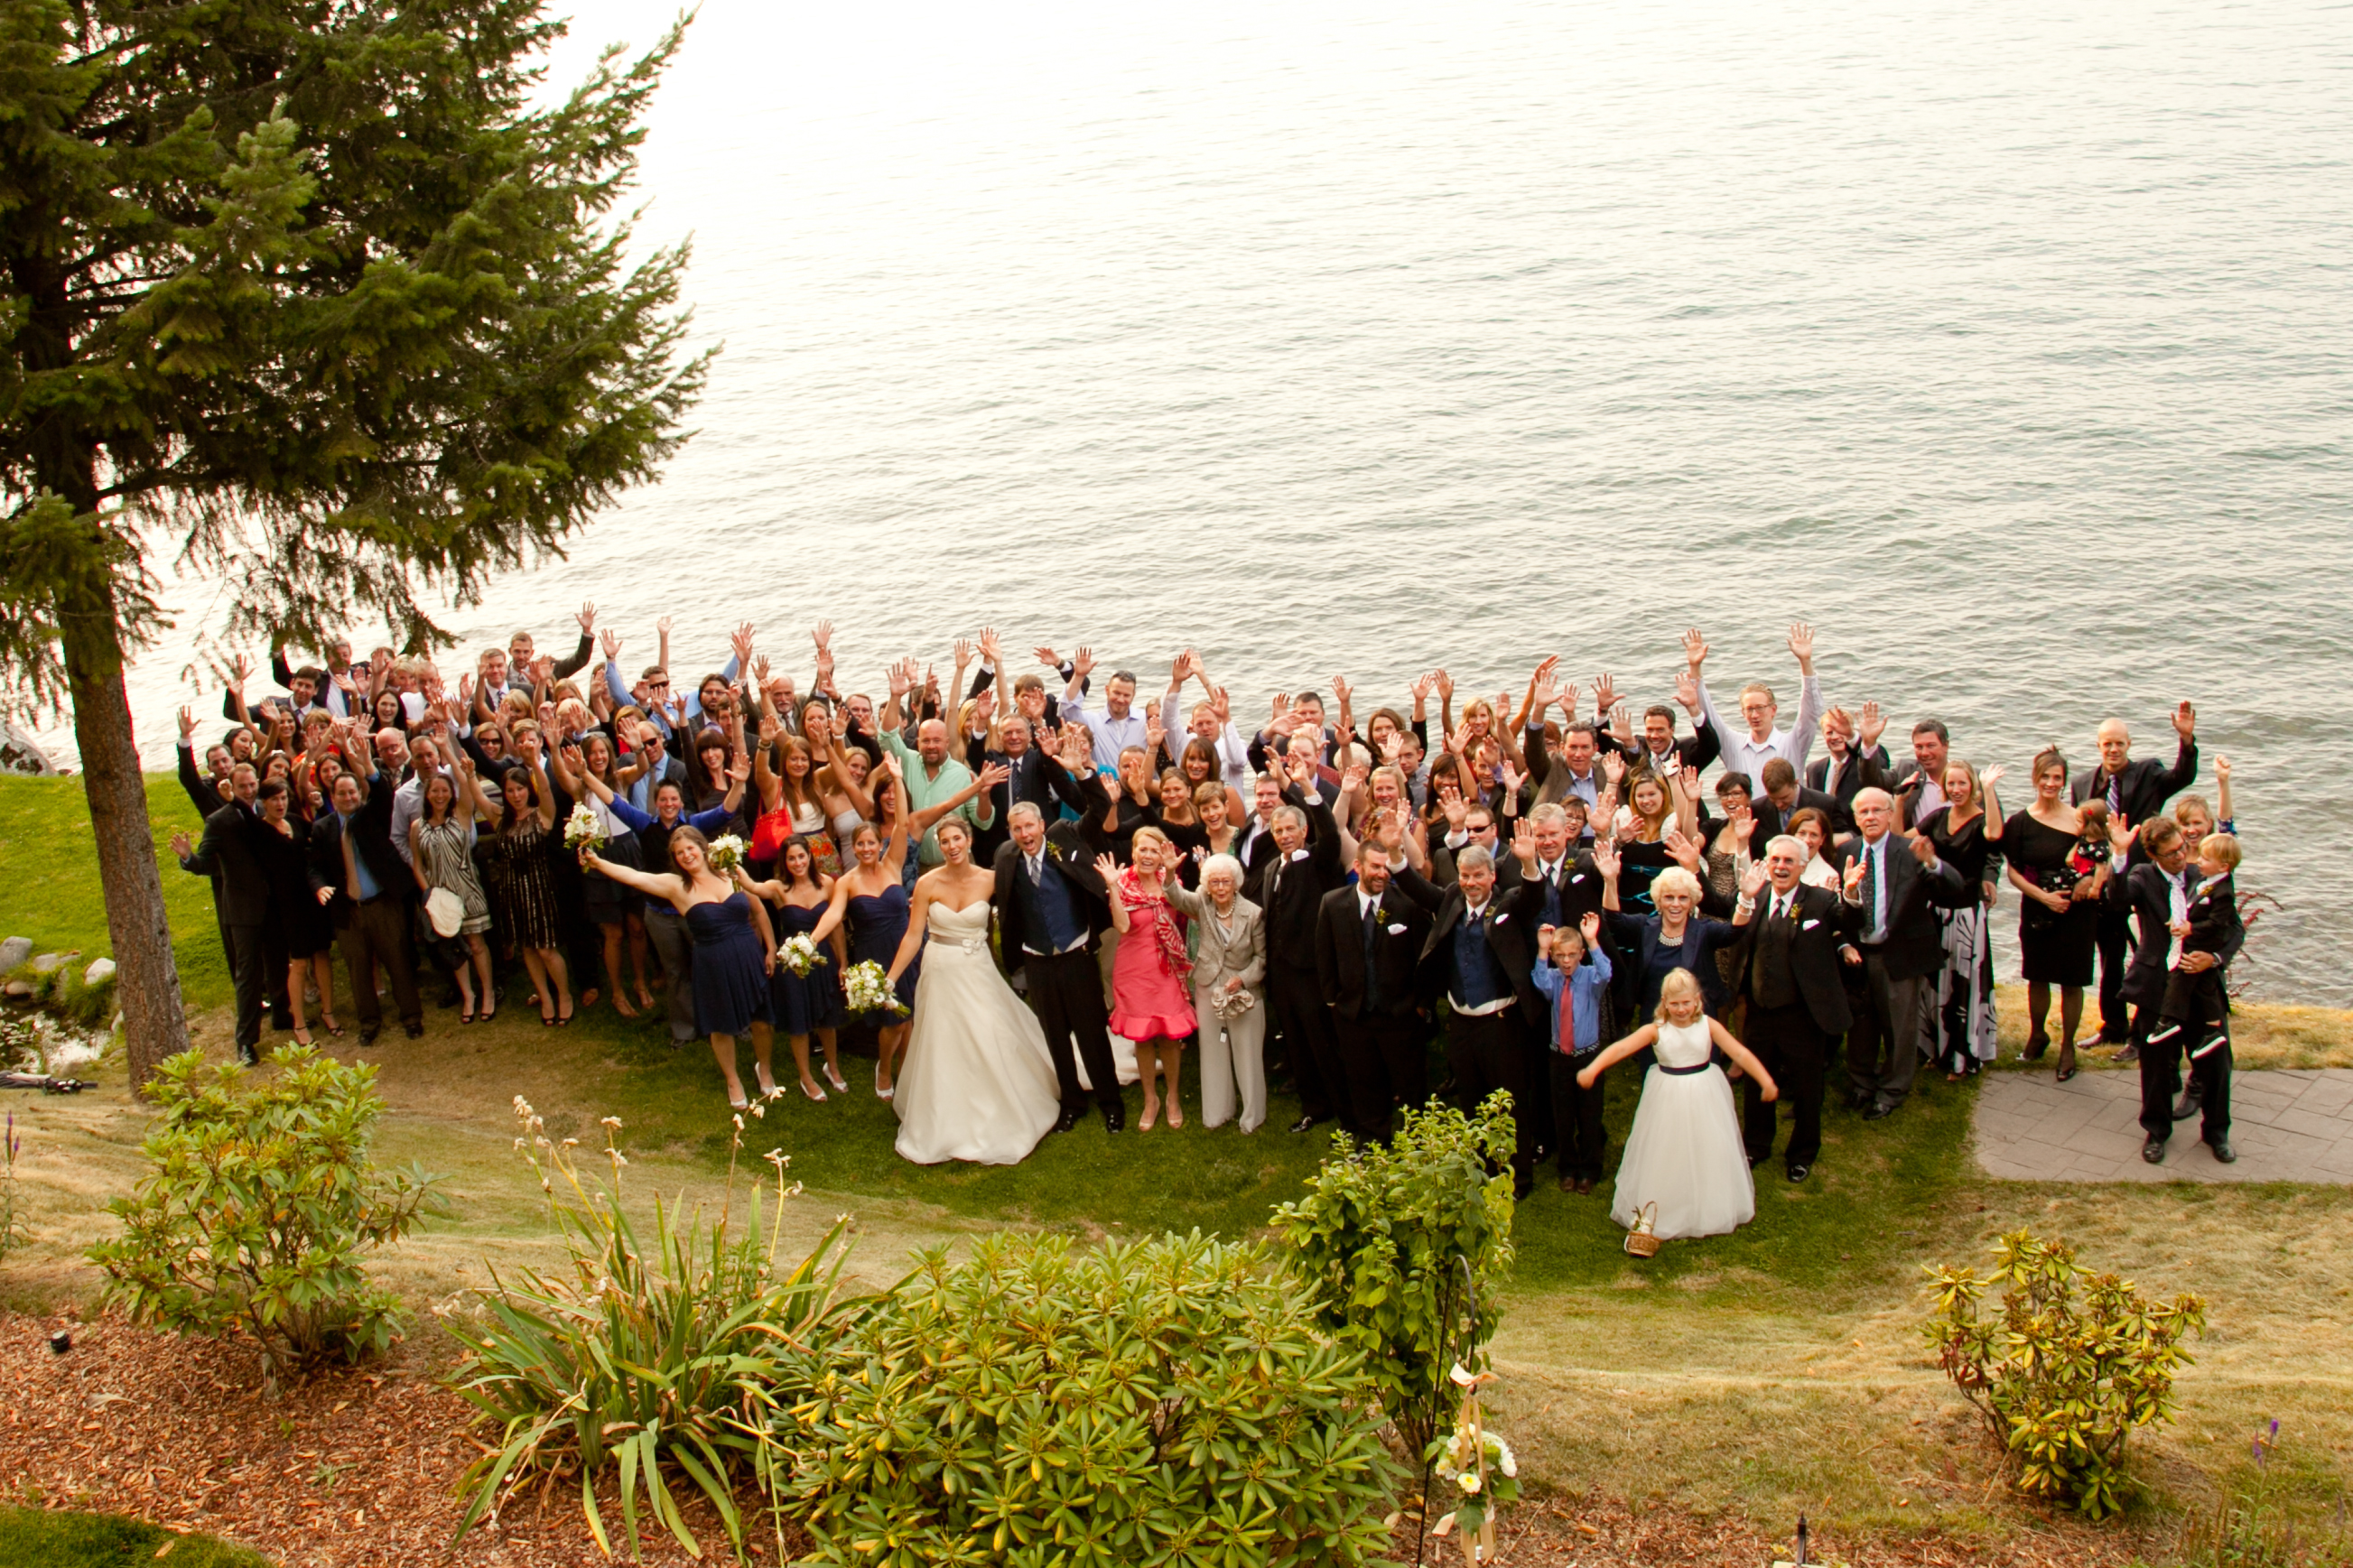 Group Shot Of All The Wedding Guests